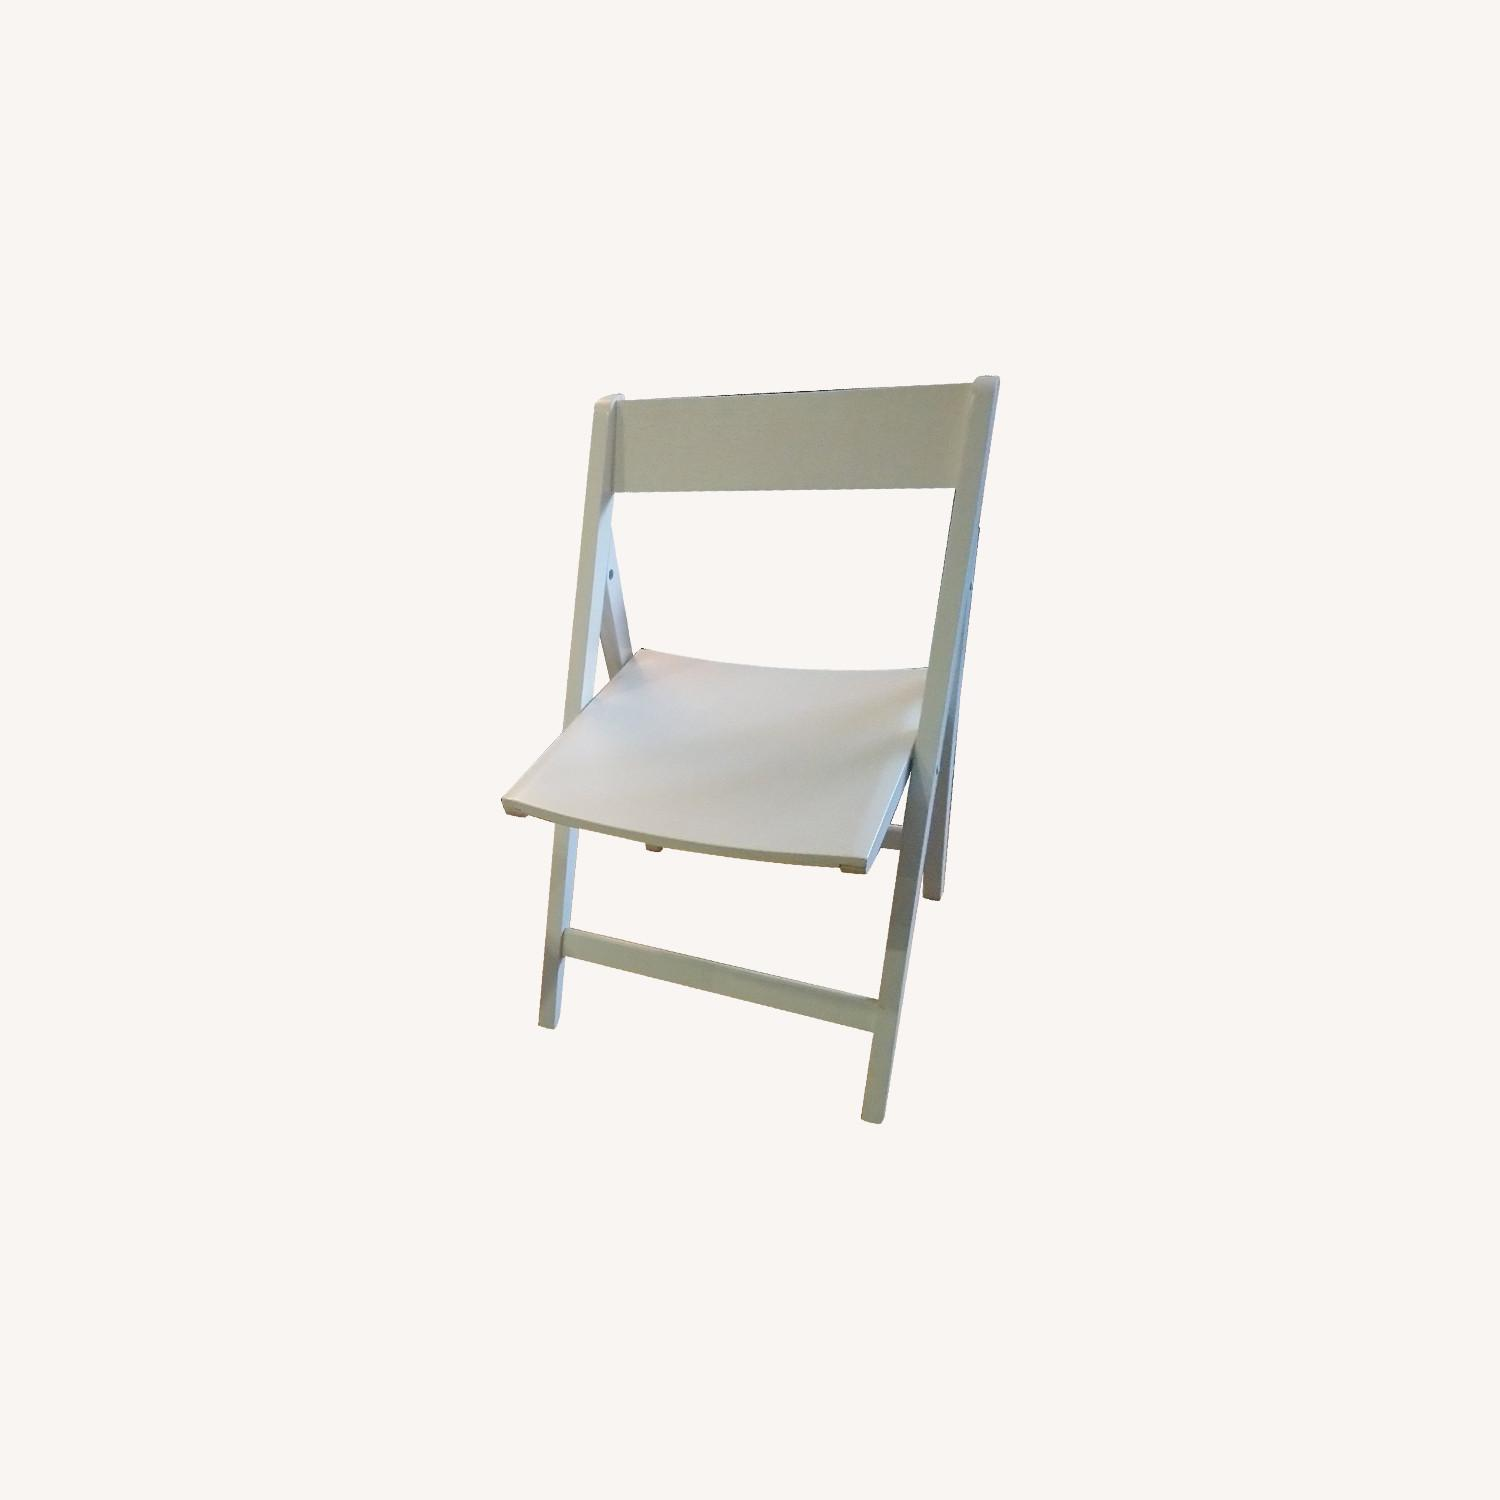 Two Rarely Used Folding Wooden Chairs - image-0